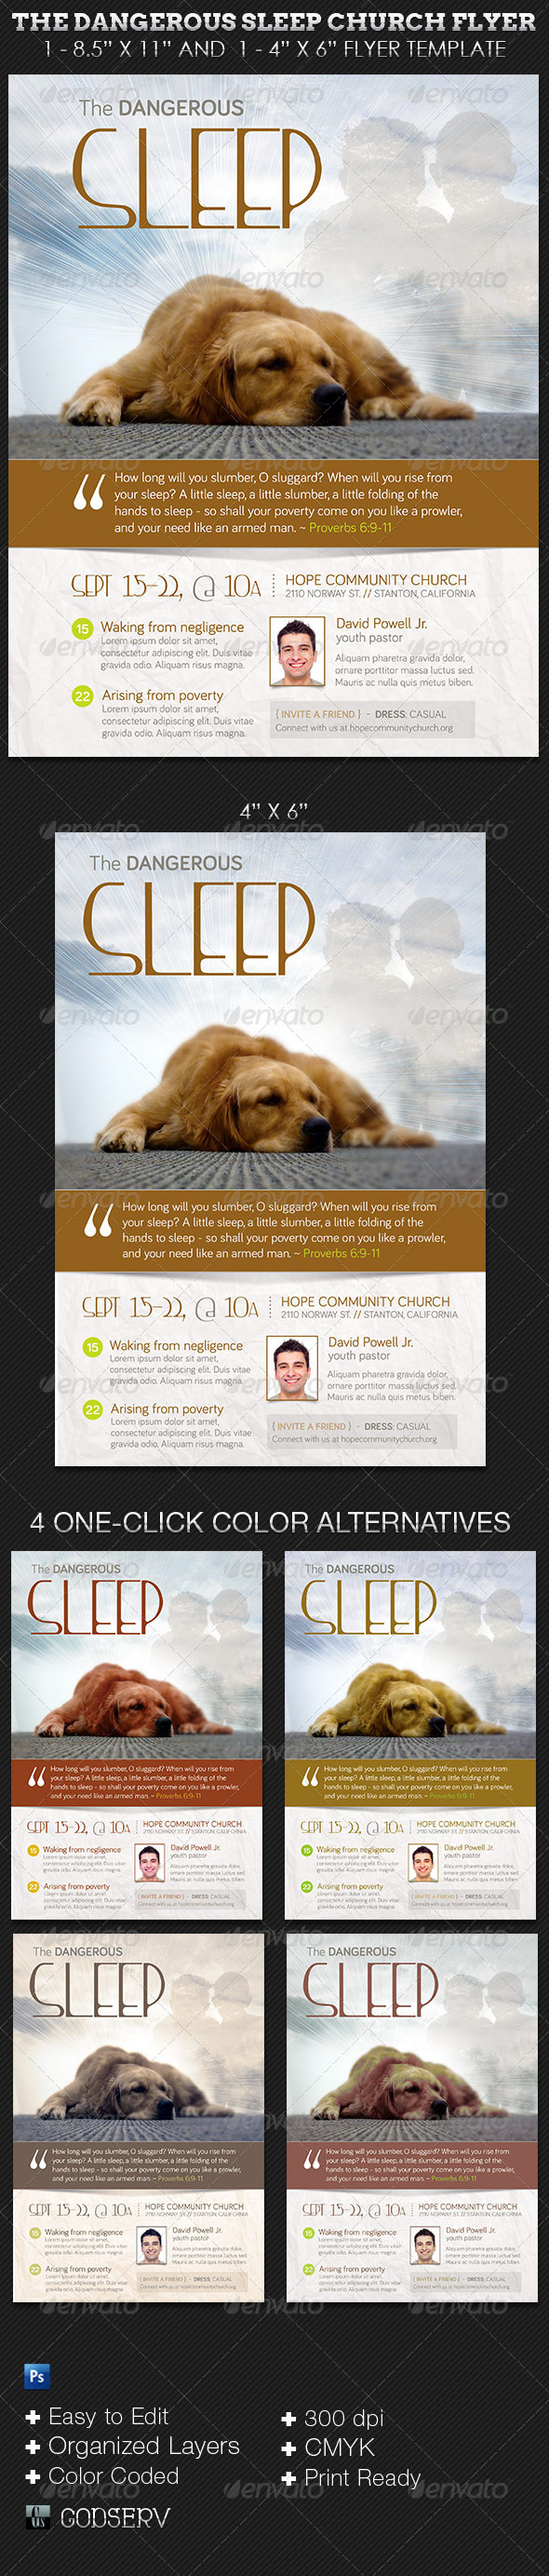 Dangerous Sleep Church Flyer Template - Church Flyers